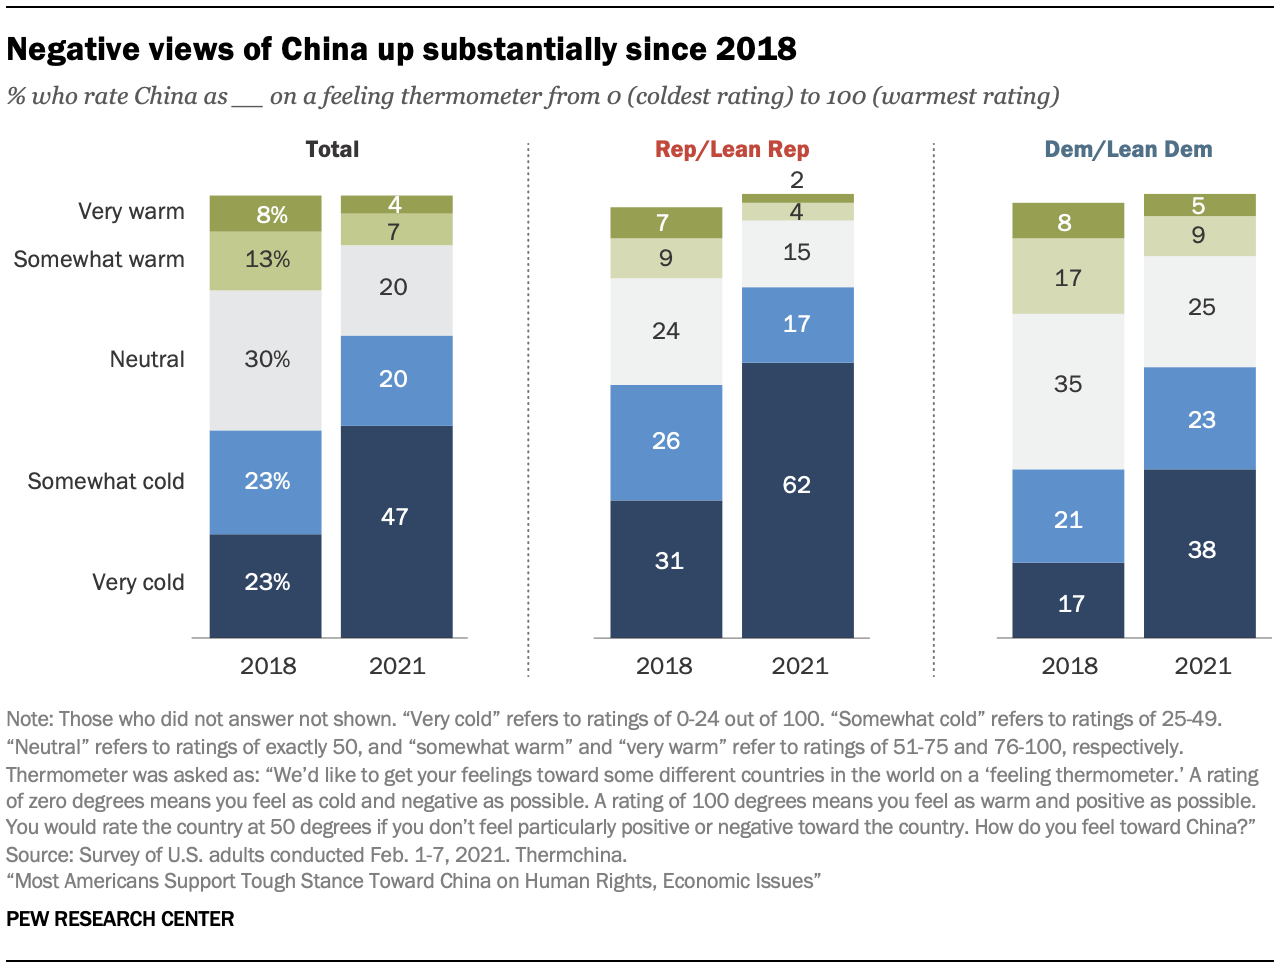 Negative views of China up substantially since 2018